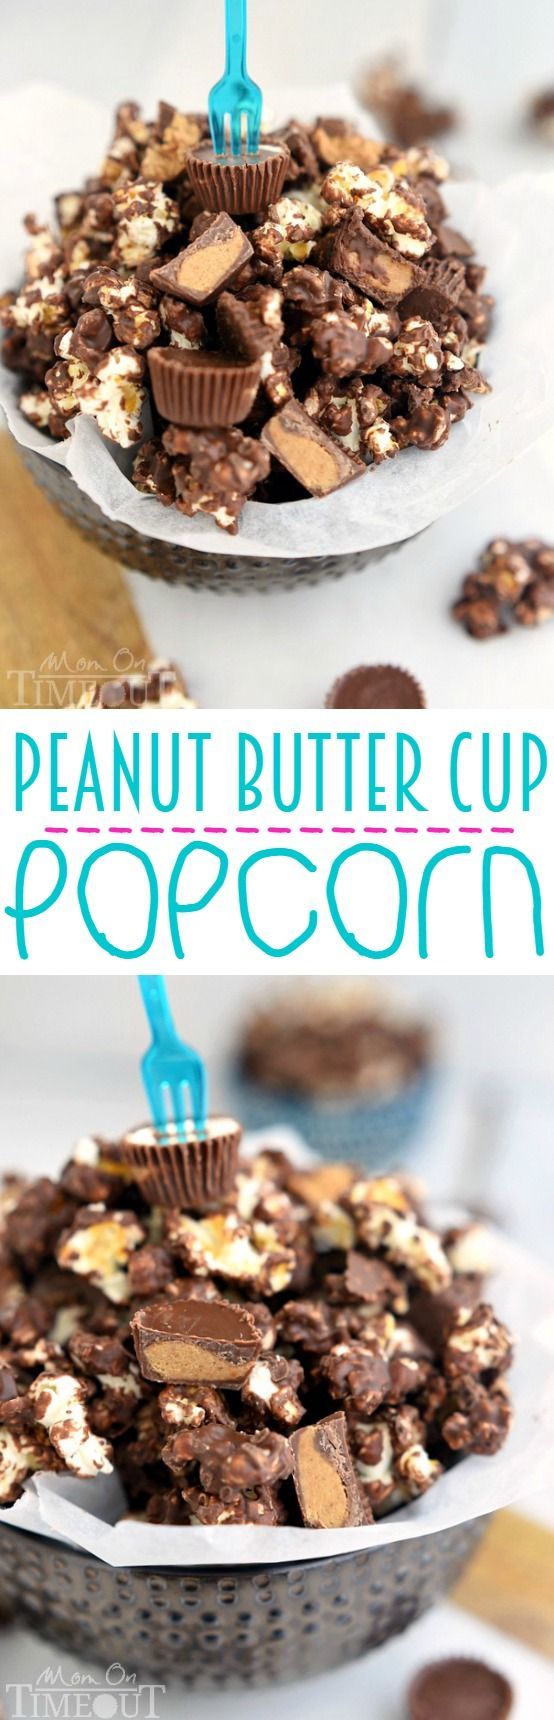 You're going to love this Peanut Butter Cup Popcorn with an explosion of peanut butter and chocolate flavors in every bite!